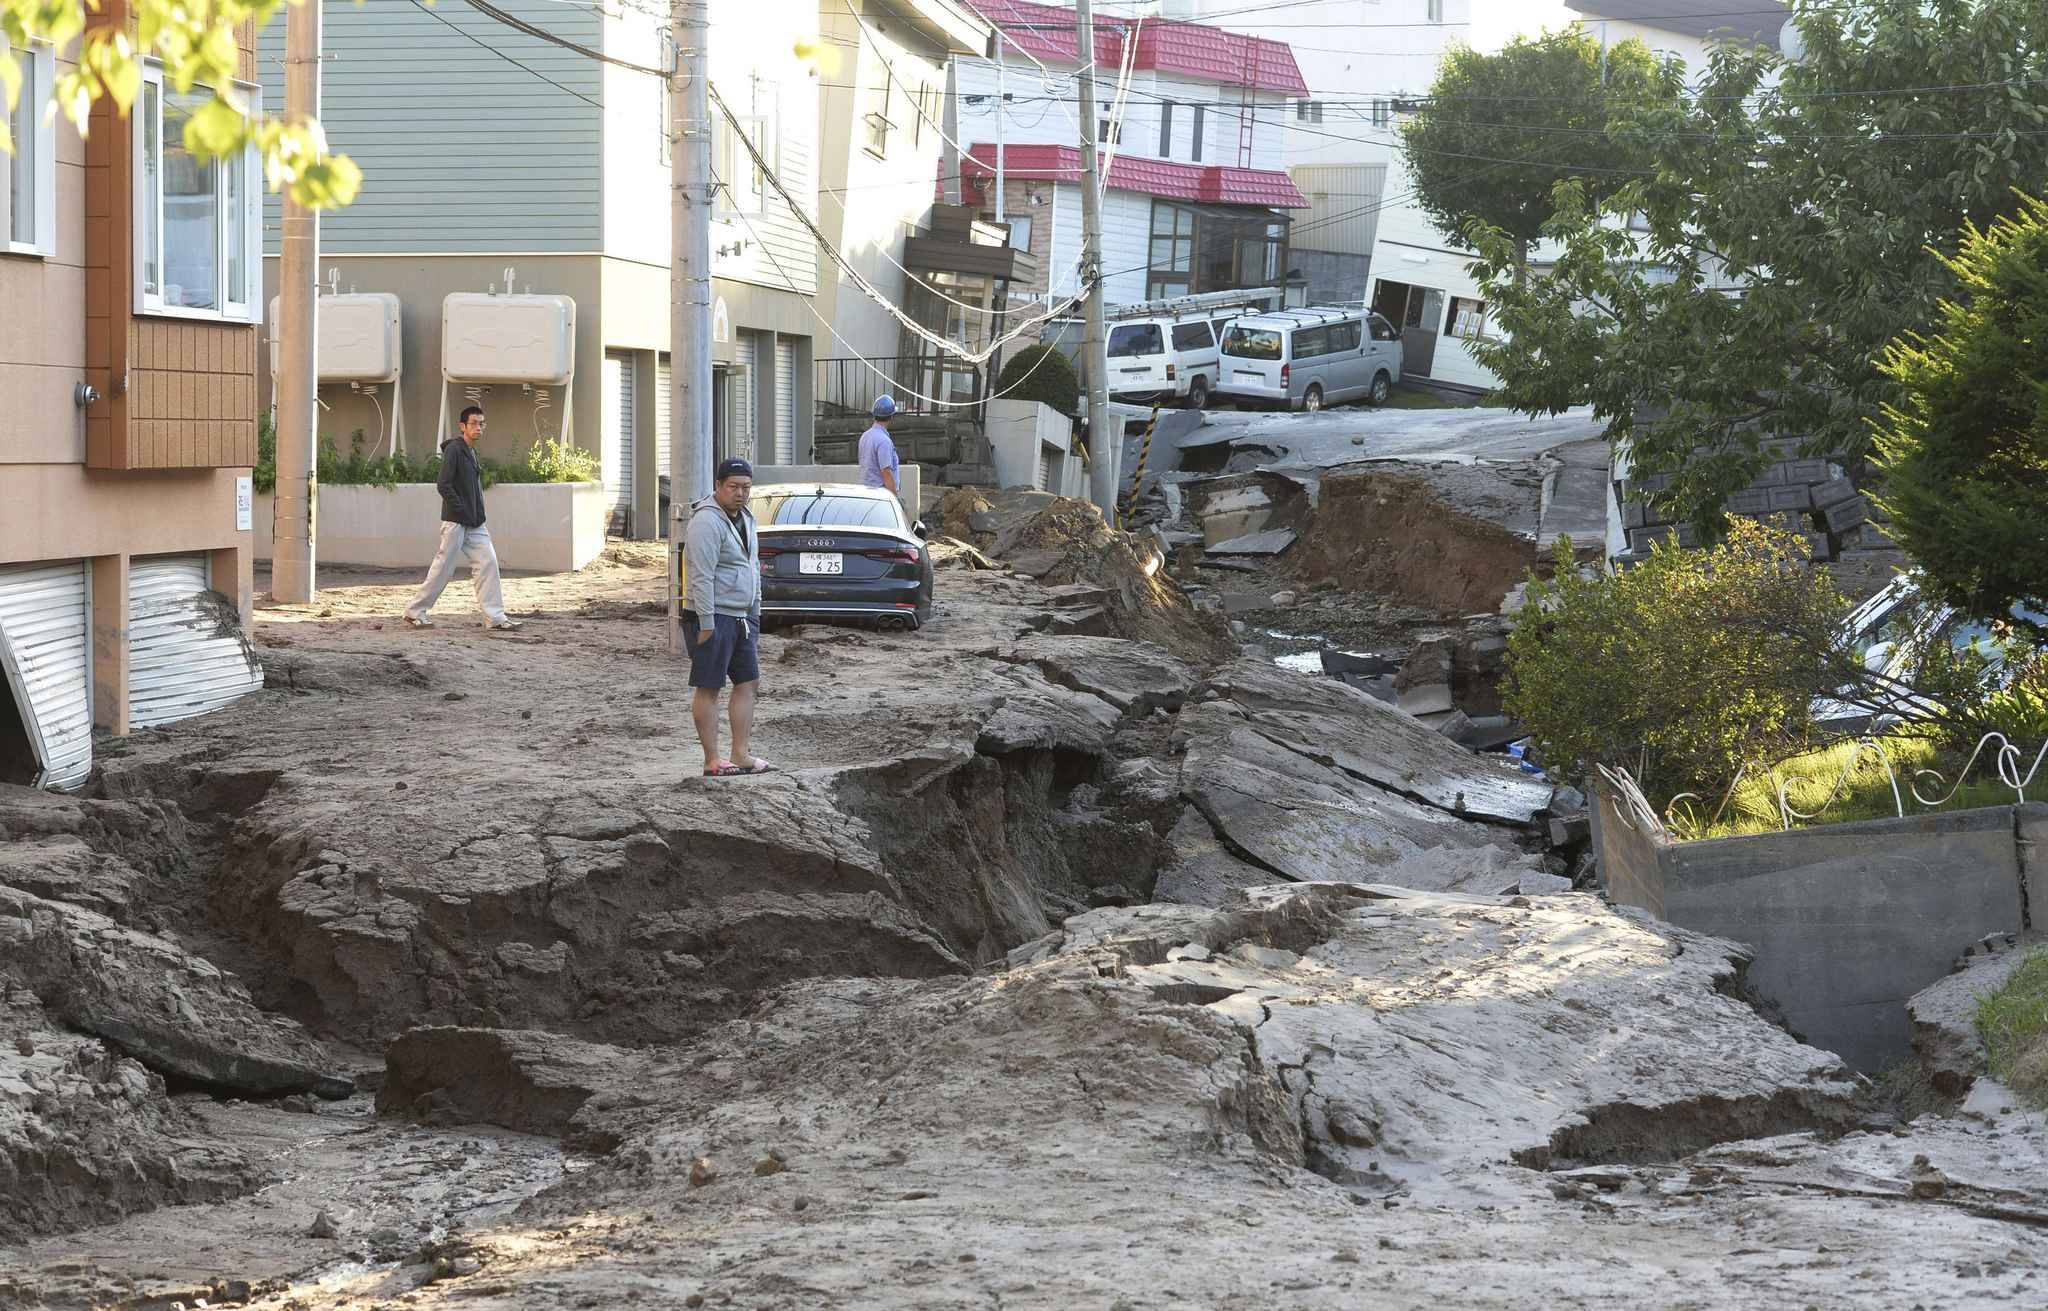 The road is destroyed in a phenomenon called liquefaction due to the huge earthquake in Sapporo City, Hokkaido Prefecture on September 6, 2018. The severe earthquake registering 7 on the Japanese seismic scale in Atsuma Town, Iburi district of Hokkaido occurred at a.m. 3 on September 6th. According to the Meteorological Agency, the depth of the epicenter was estimated to be about 37 kilometers, and the indicative magnitude was estimated to be 6.7.